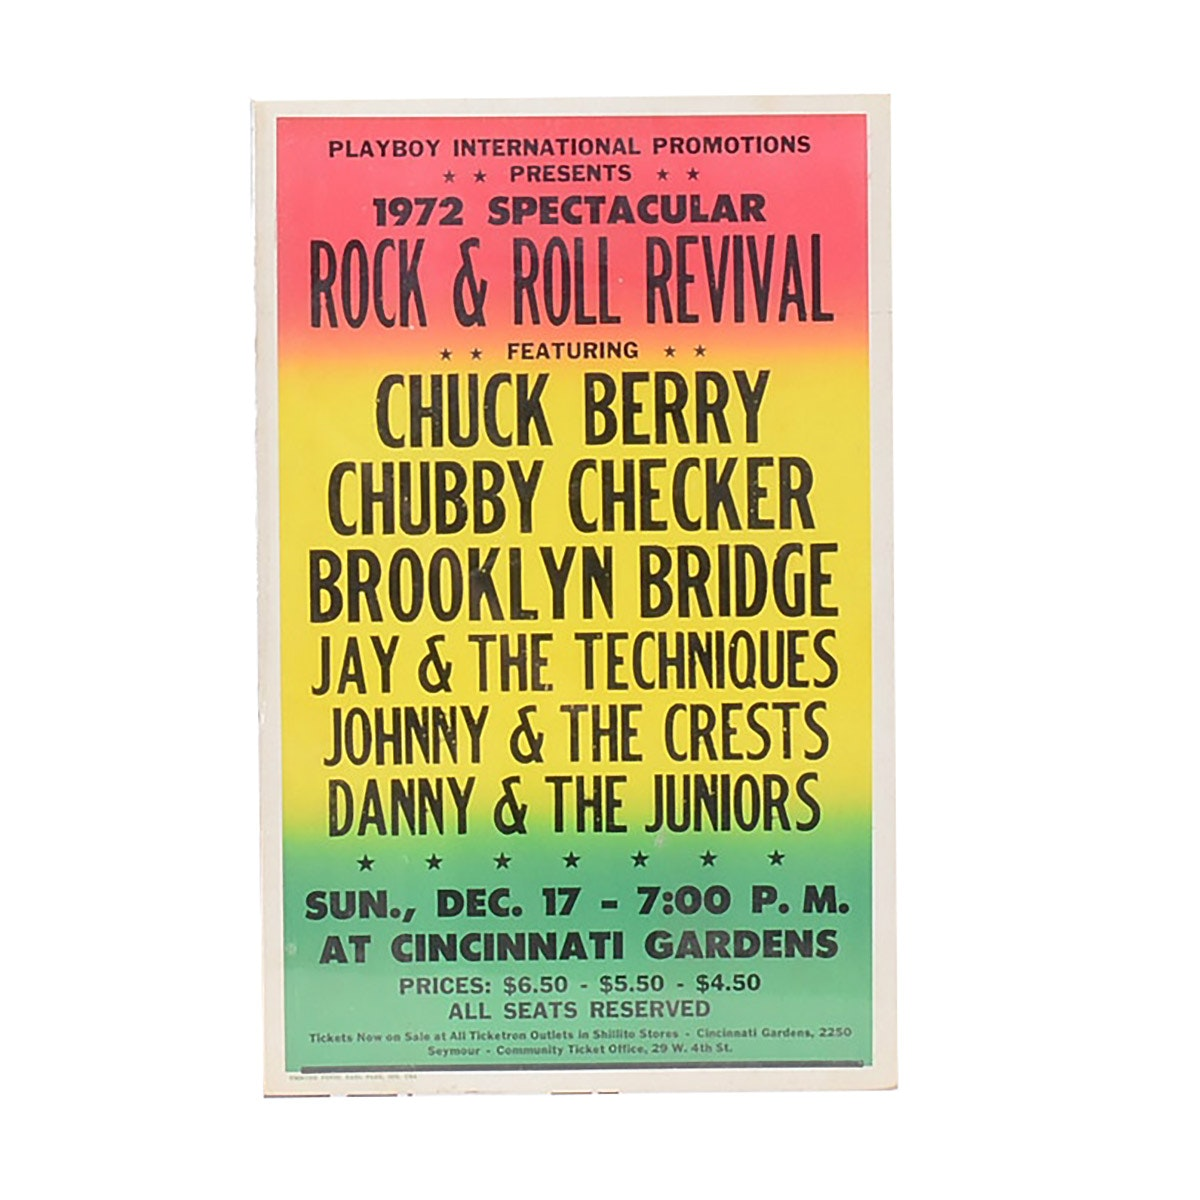 1972 Rock & Roll Revival Spectacular Tour Poster